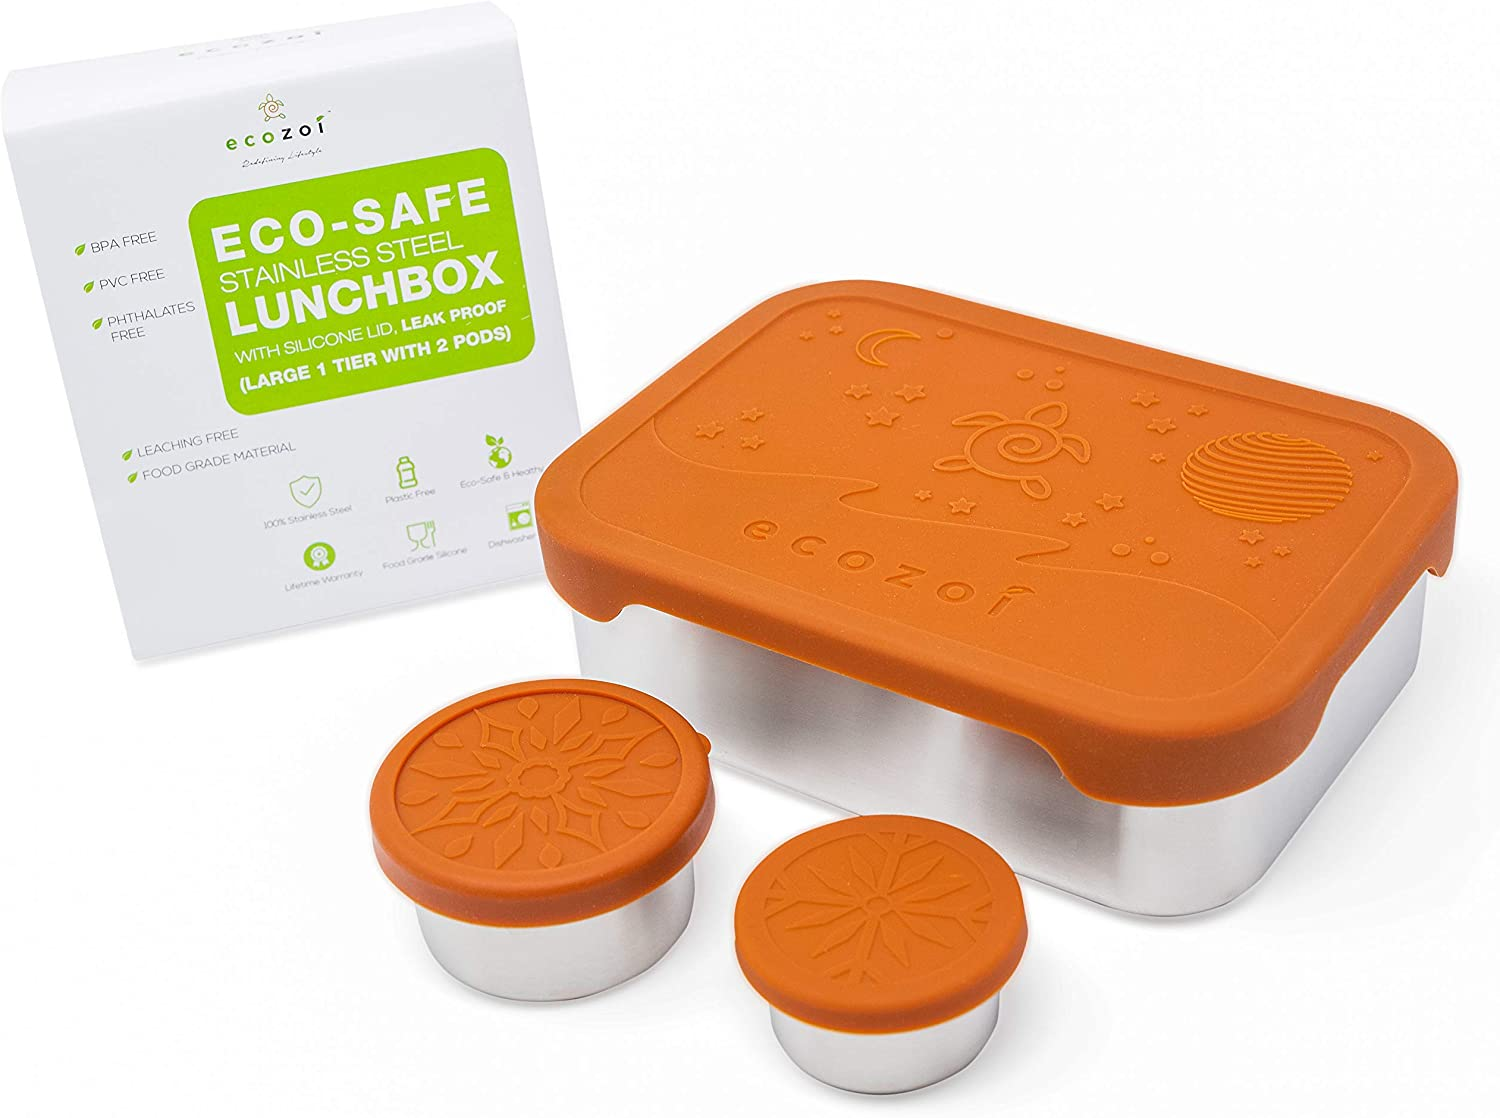 ecozoi Stainless Steel Bento Box Leak Proof 1-Tier Eco Metal Lunch Box 1200 Ml Or 40 Oz | 2 Bonus Pods and Silicone Lid | Sustainable Zero Waste Eco-Friendly Food Storage